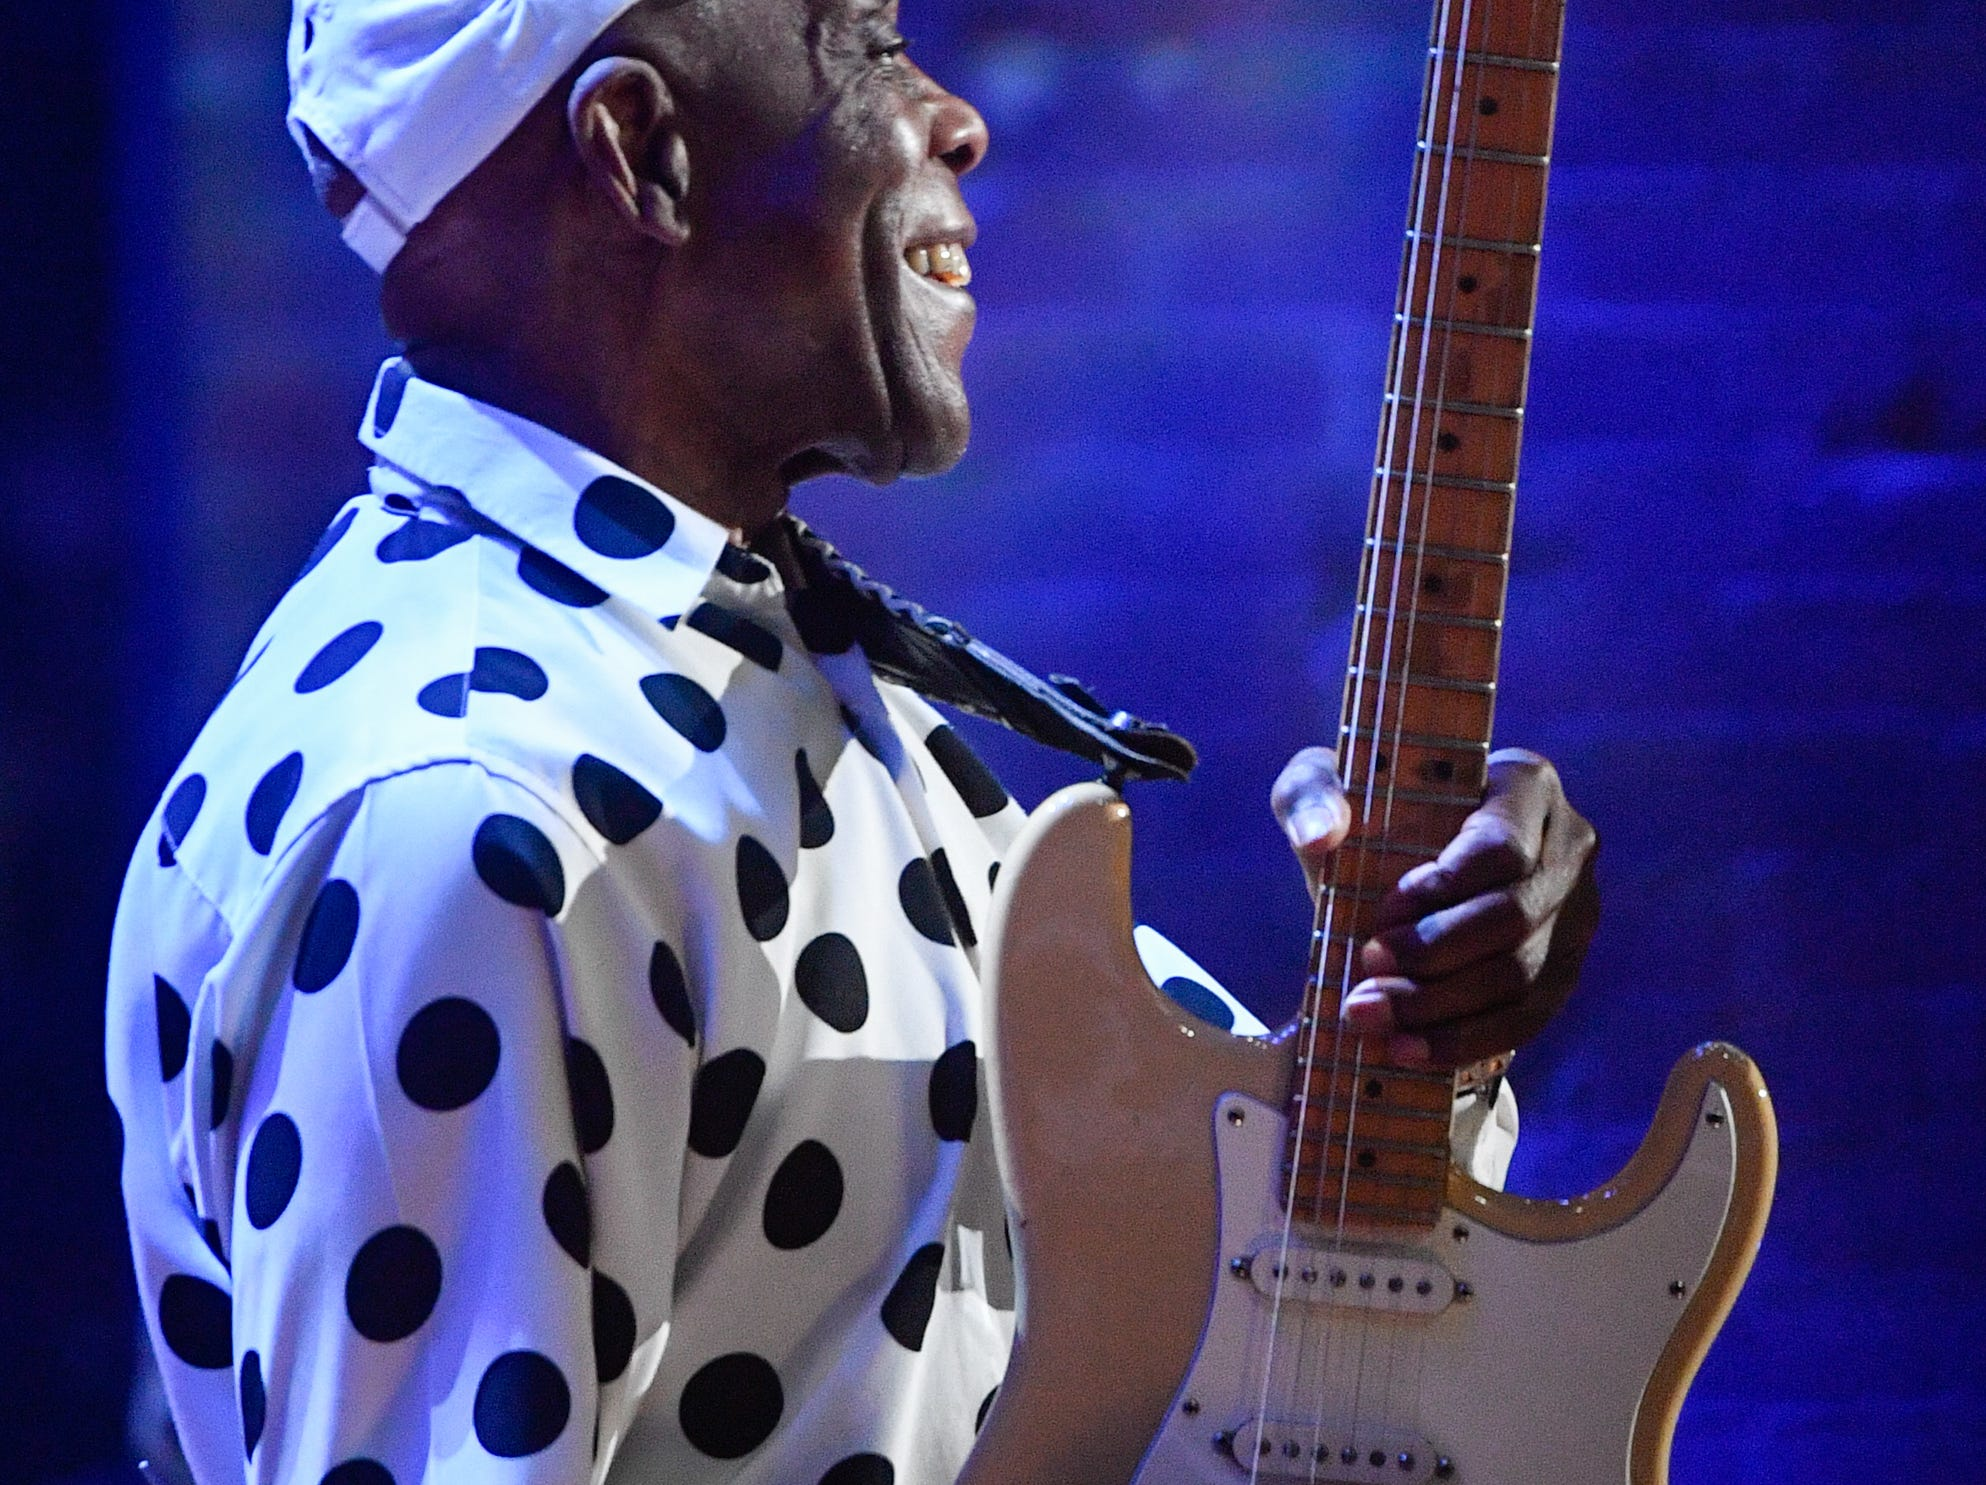 Buddy Guy performs during the 2018 Americana Honors and Awards show at the Ryman Auditorium in Nashville, Tenn., Wednesday, Sept. 12, 2018.